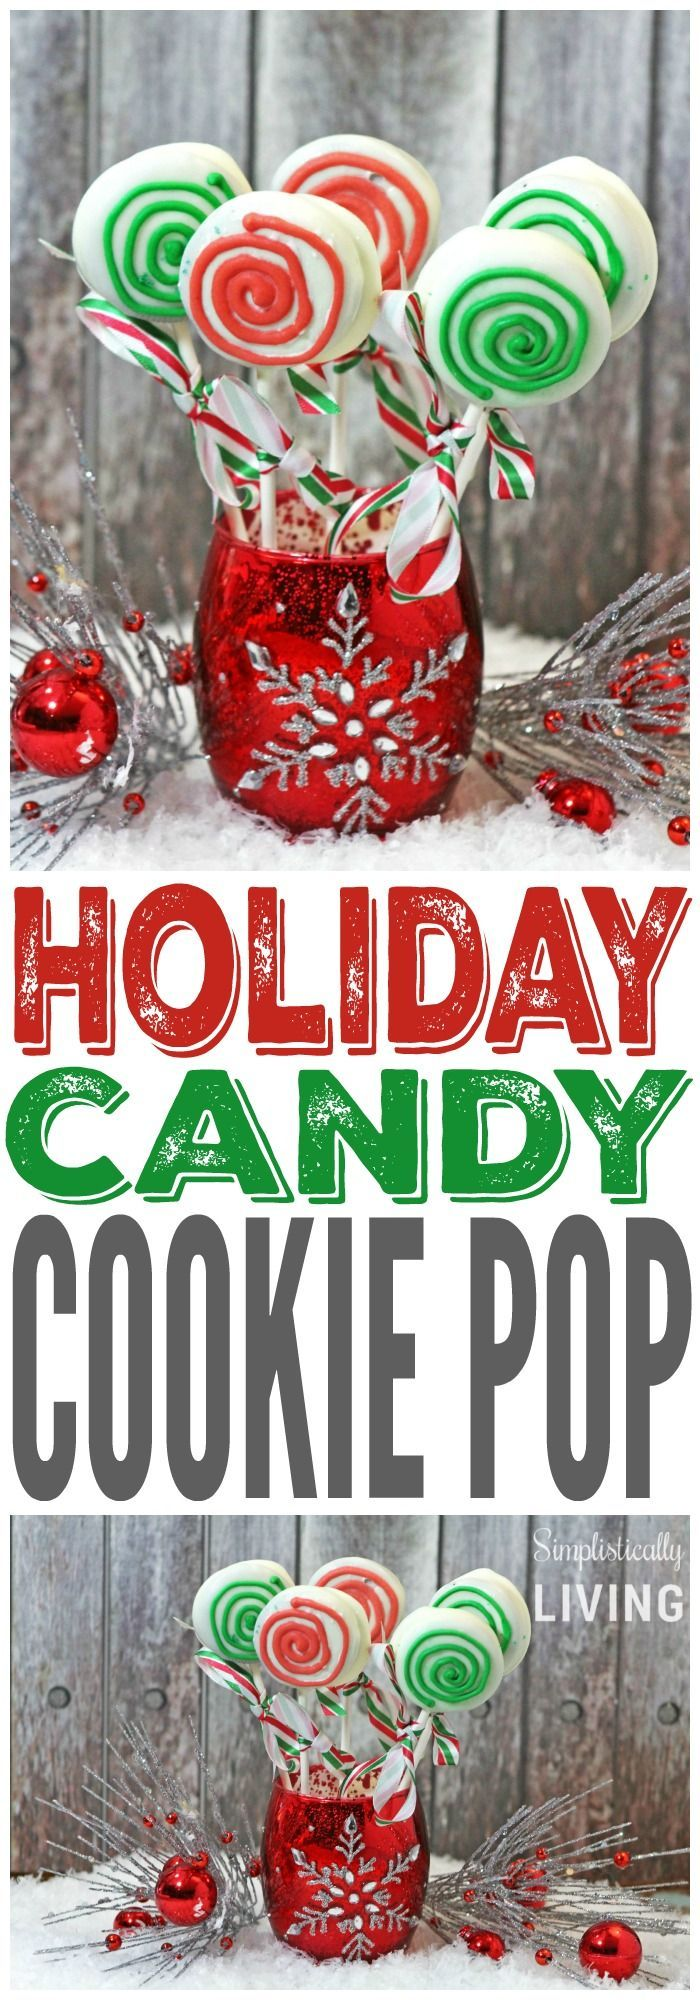 Holiday Candy Cookie pops | Simplistically Living - Featured at the #HomeMattersParty 66